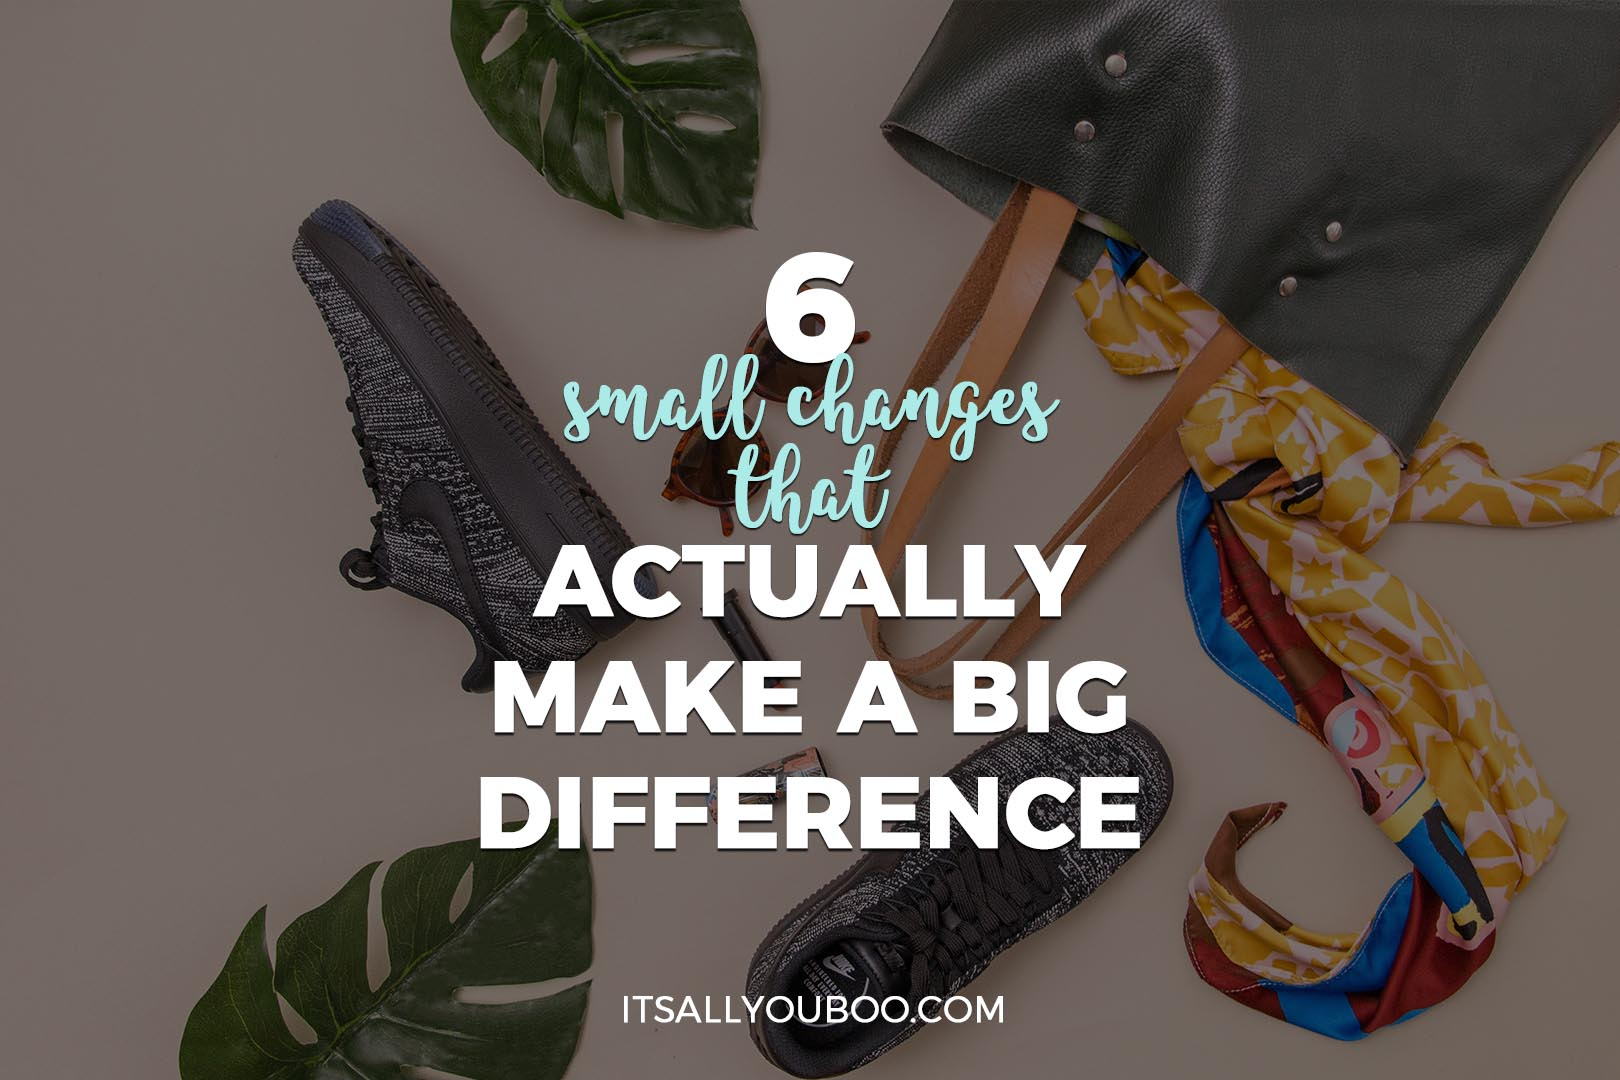 6 Small Changes that Actually Make a Big Difference